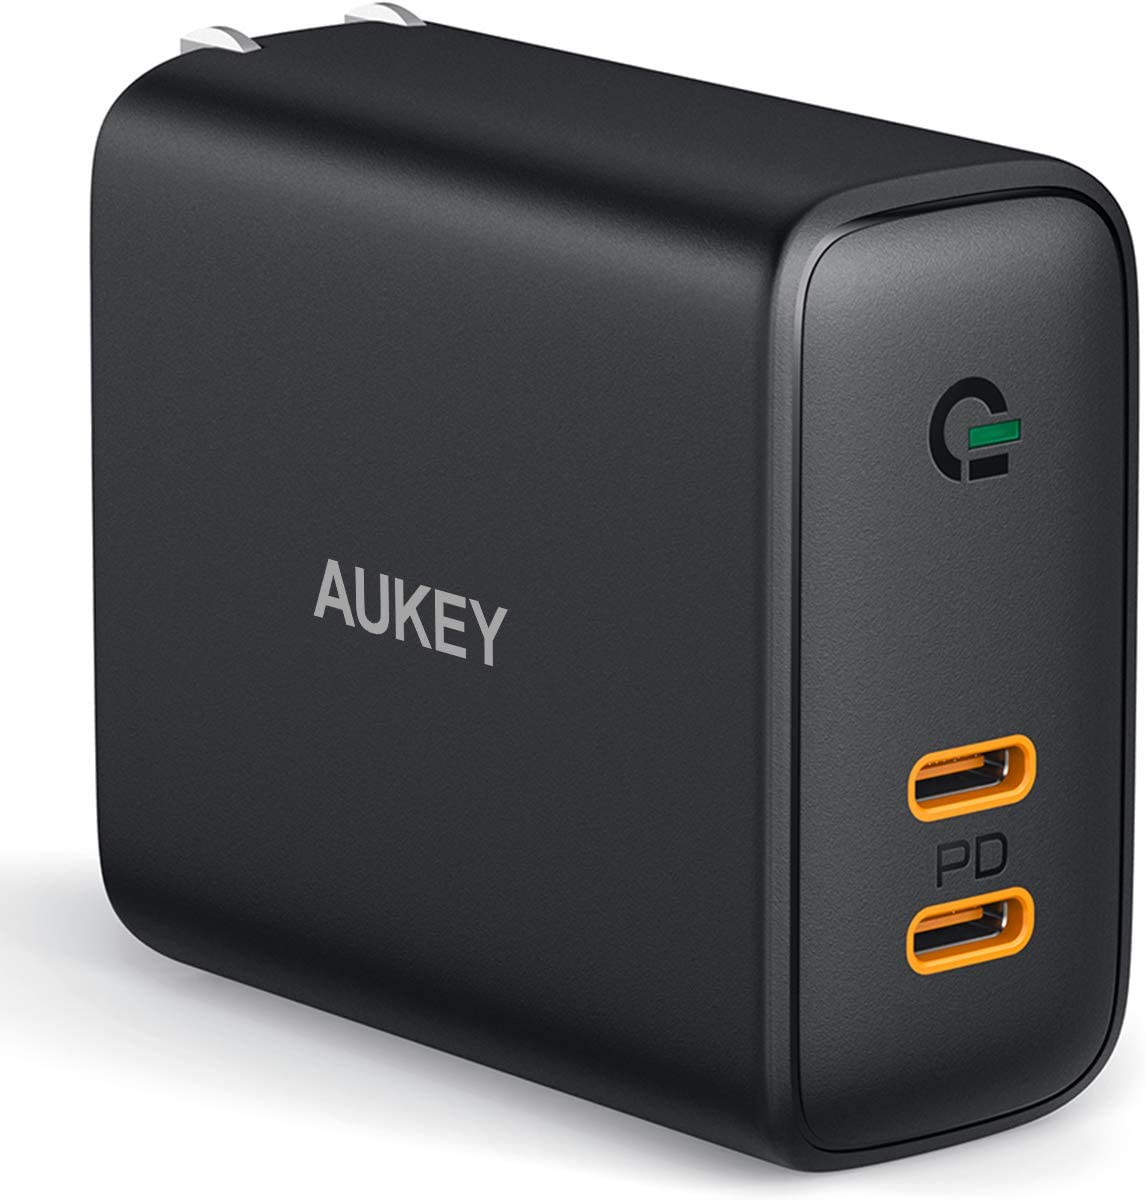 USB C Charger AUKEY 36W 2-Port Foldable Fast Charger with 30W Power Delivery 3.0 & Dynamic Detect Type C Wall Charger for iPhone 11 Pro Max SE, Galaxy S10, Pixel 4XL, MacBook, iPad, Airpods Pro Switch